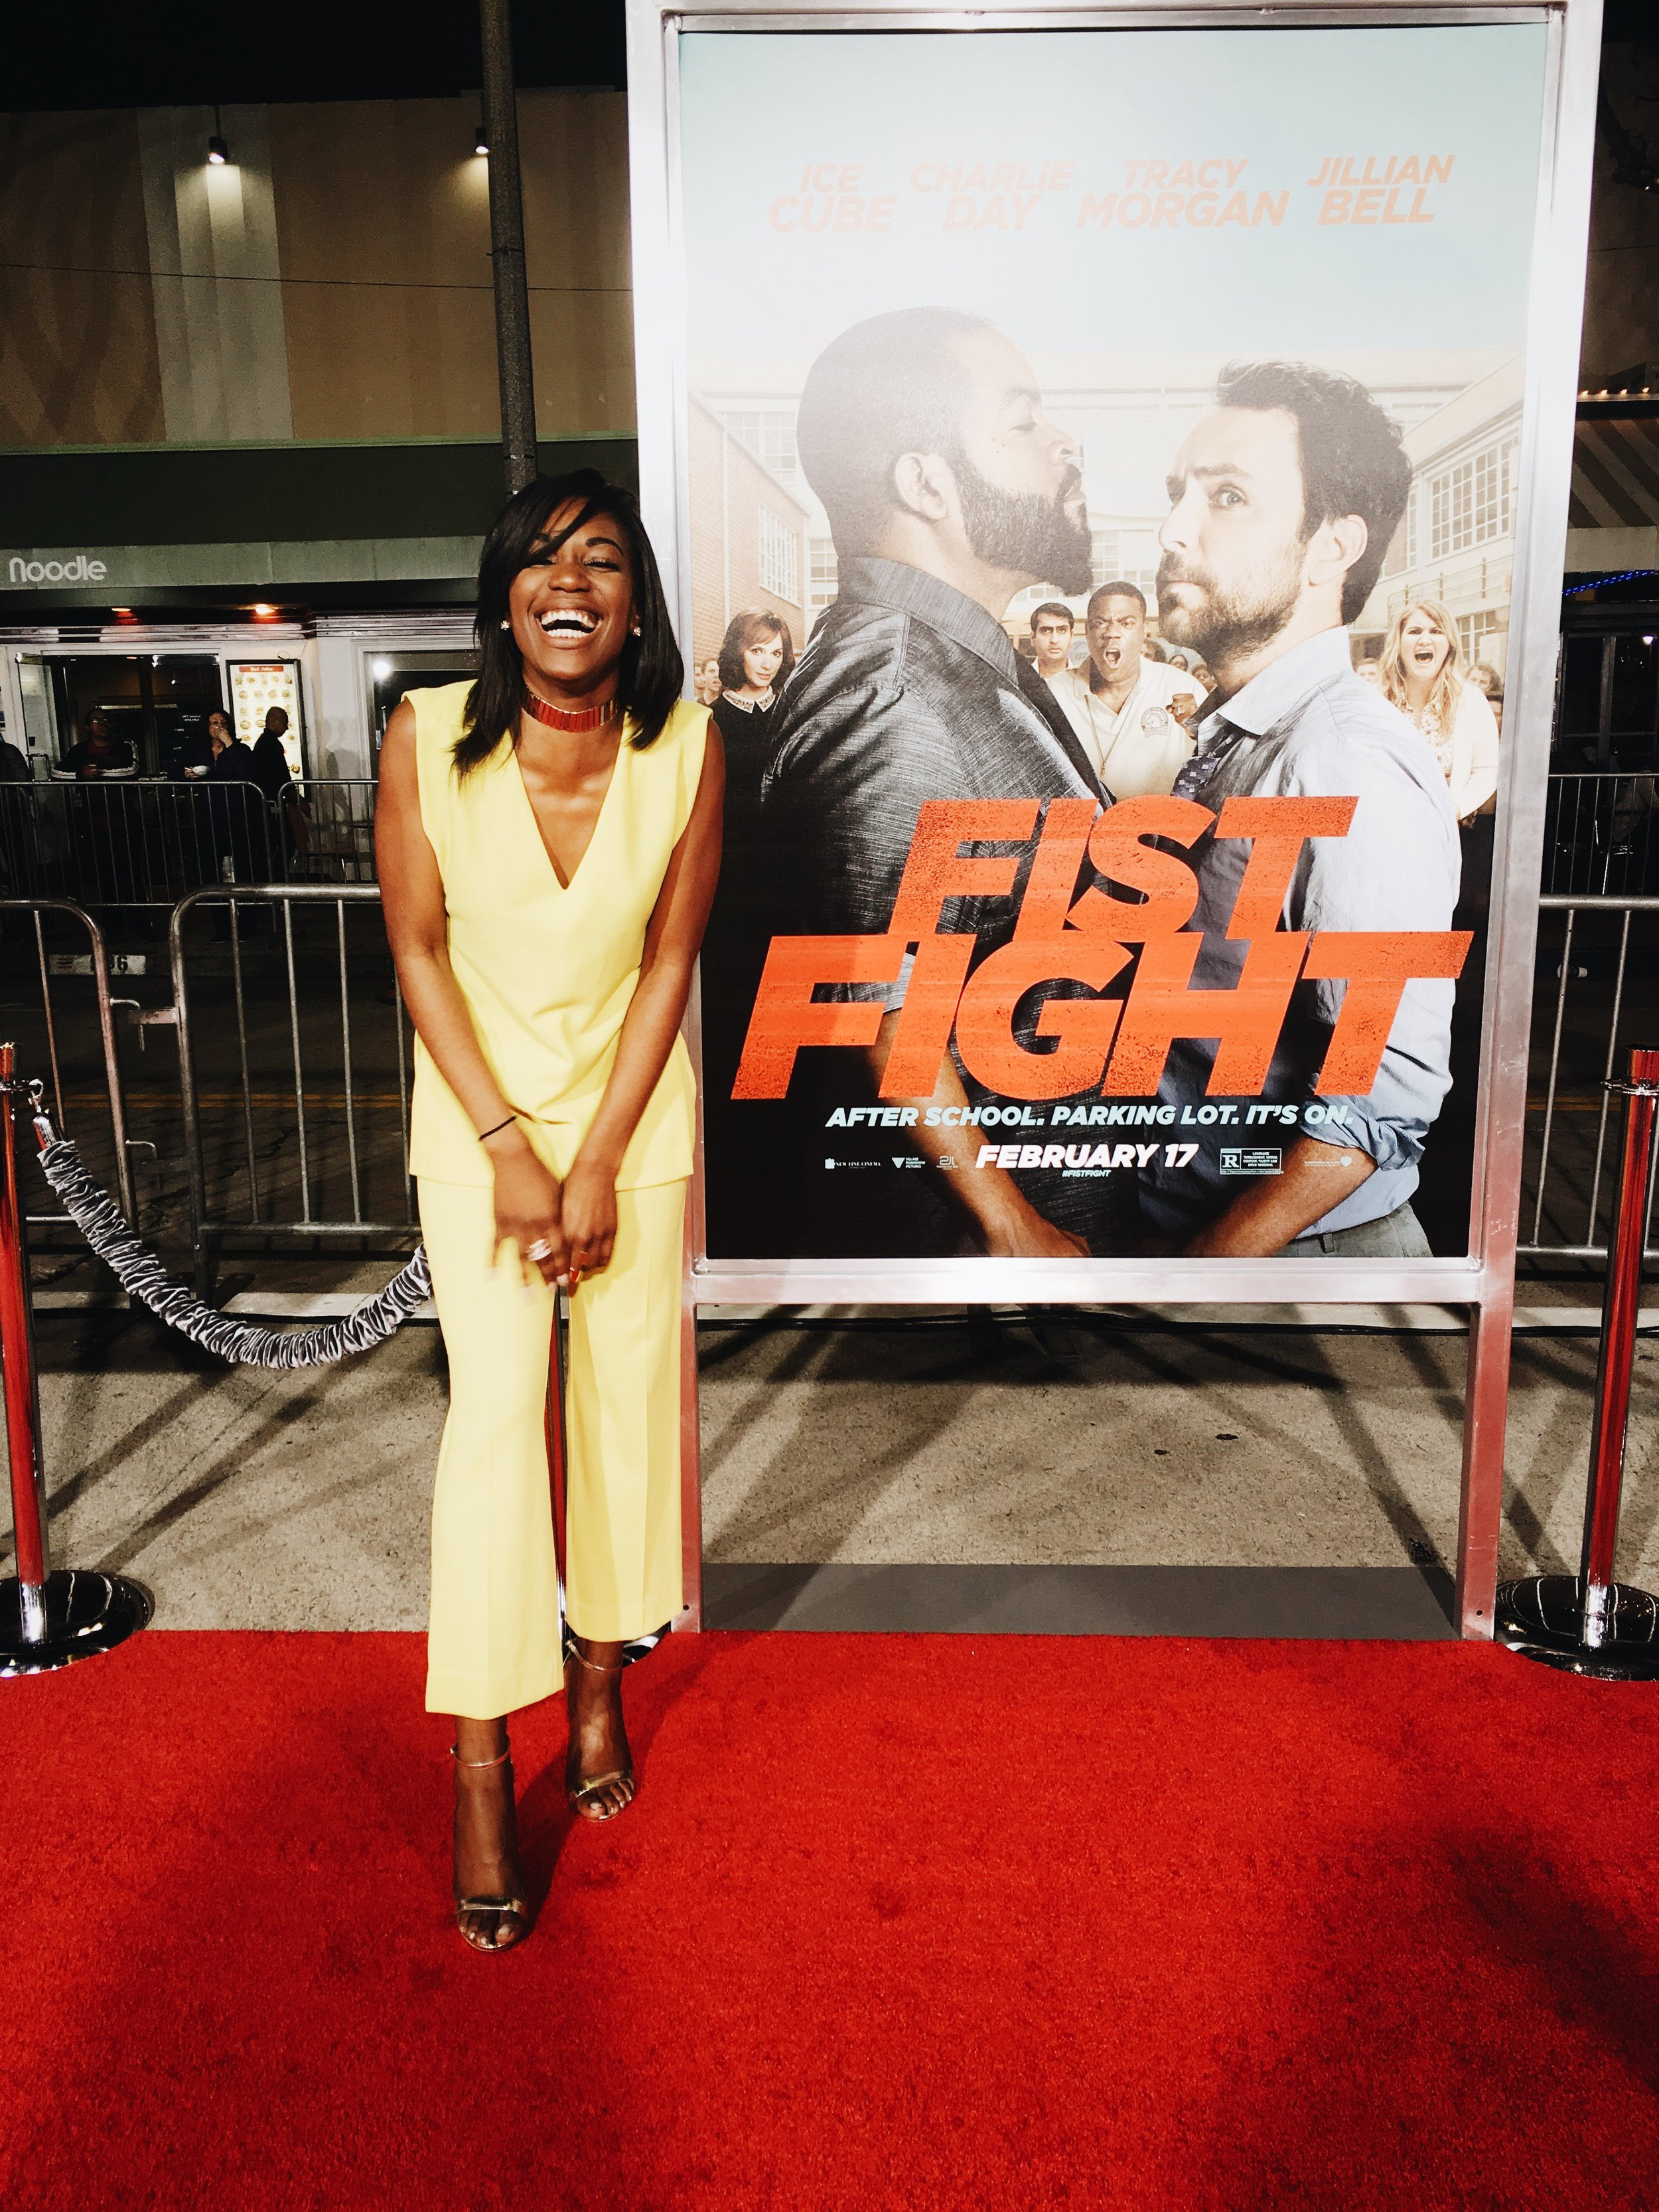 Fist Fight Premiere